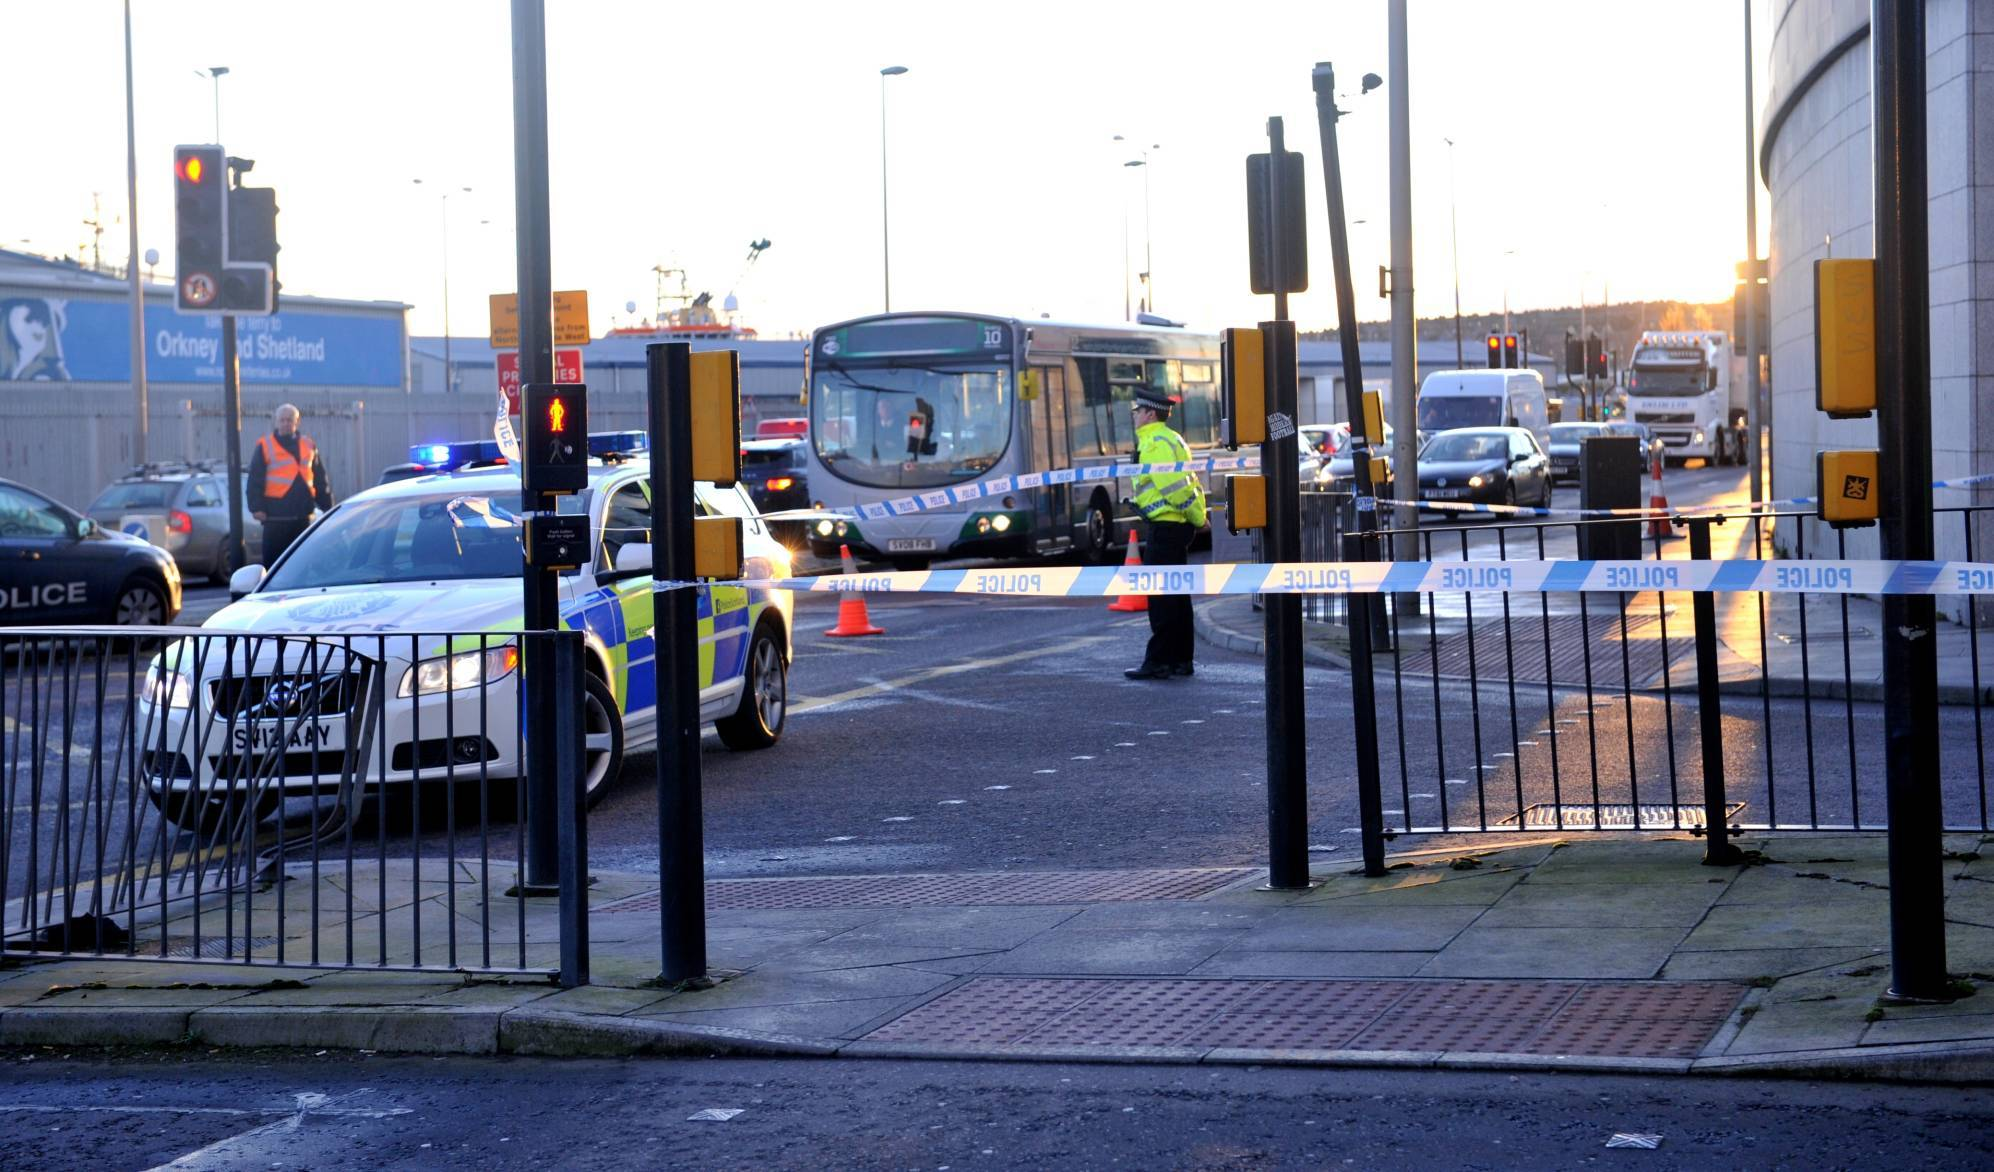 Police at the scene of the Market Street accident yesterday